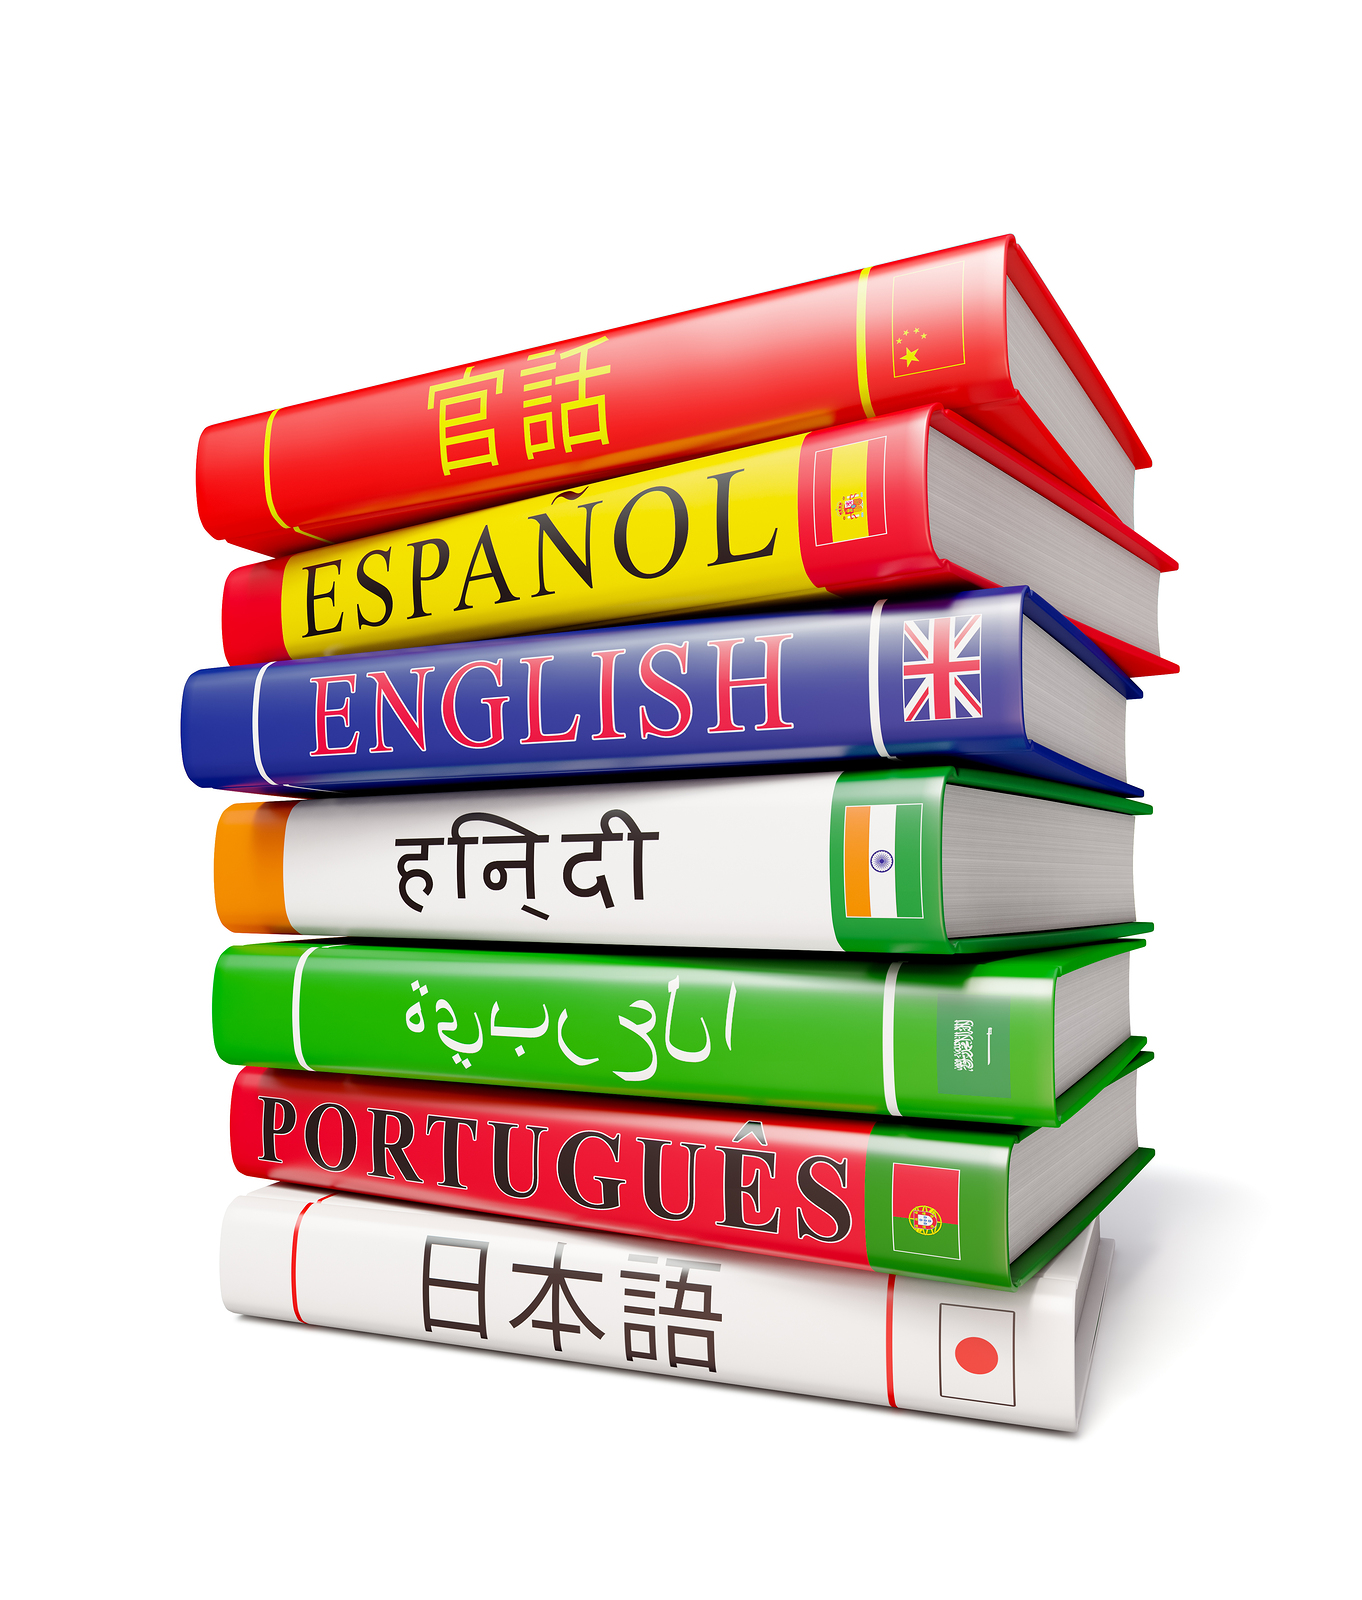 Fun fact: Over 350 different language--other than English--are spoken throughout U.S. homes.